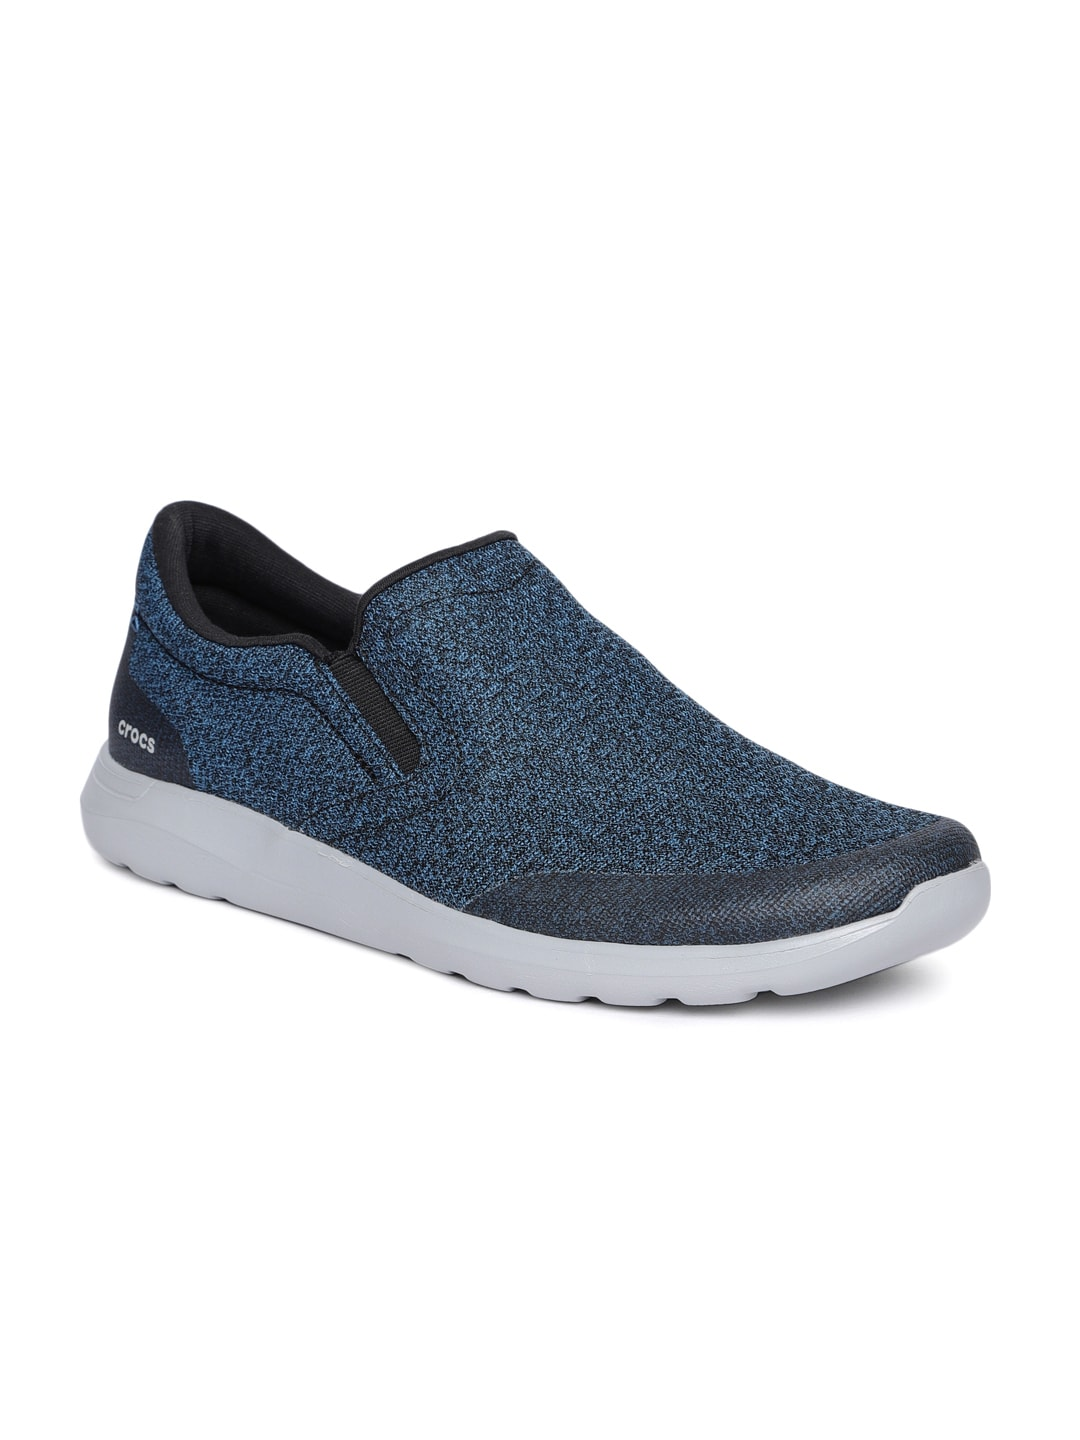 c37593d89540 Crocs Men Footwear - Buy Crocs Shoes and Sandals For Men Online in India